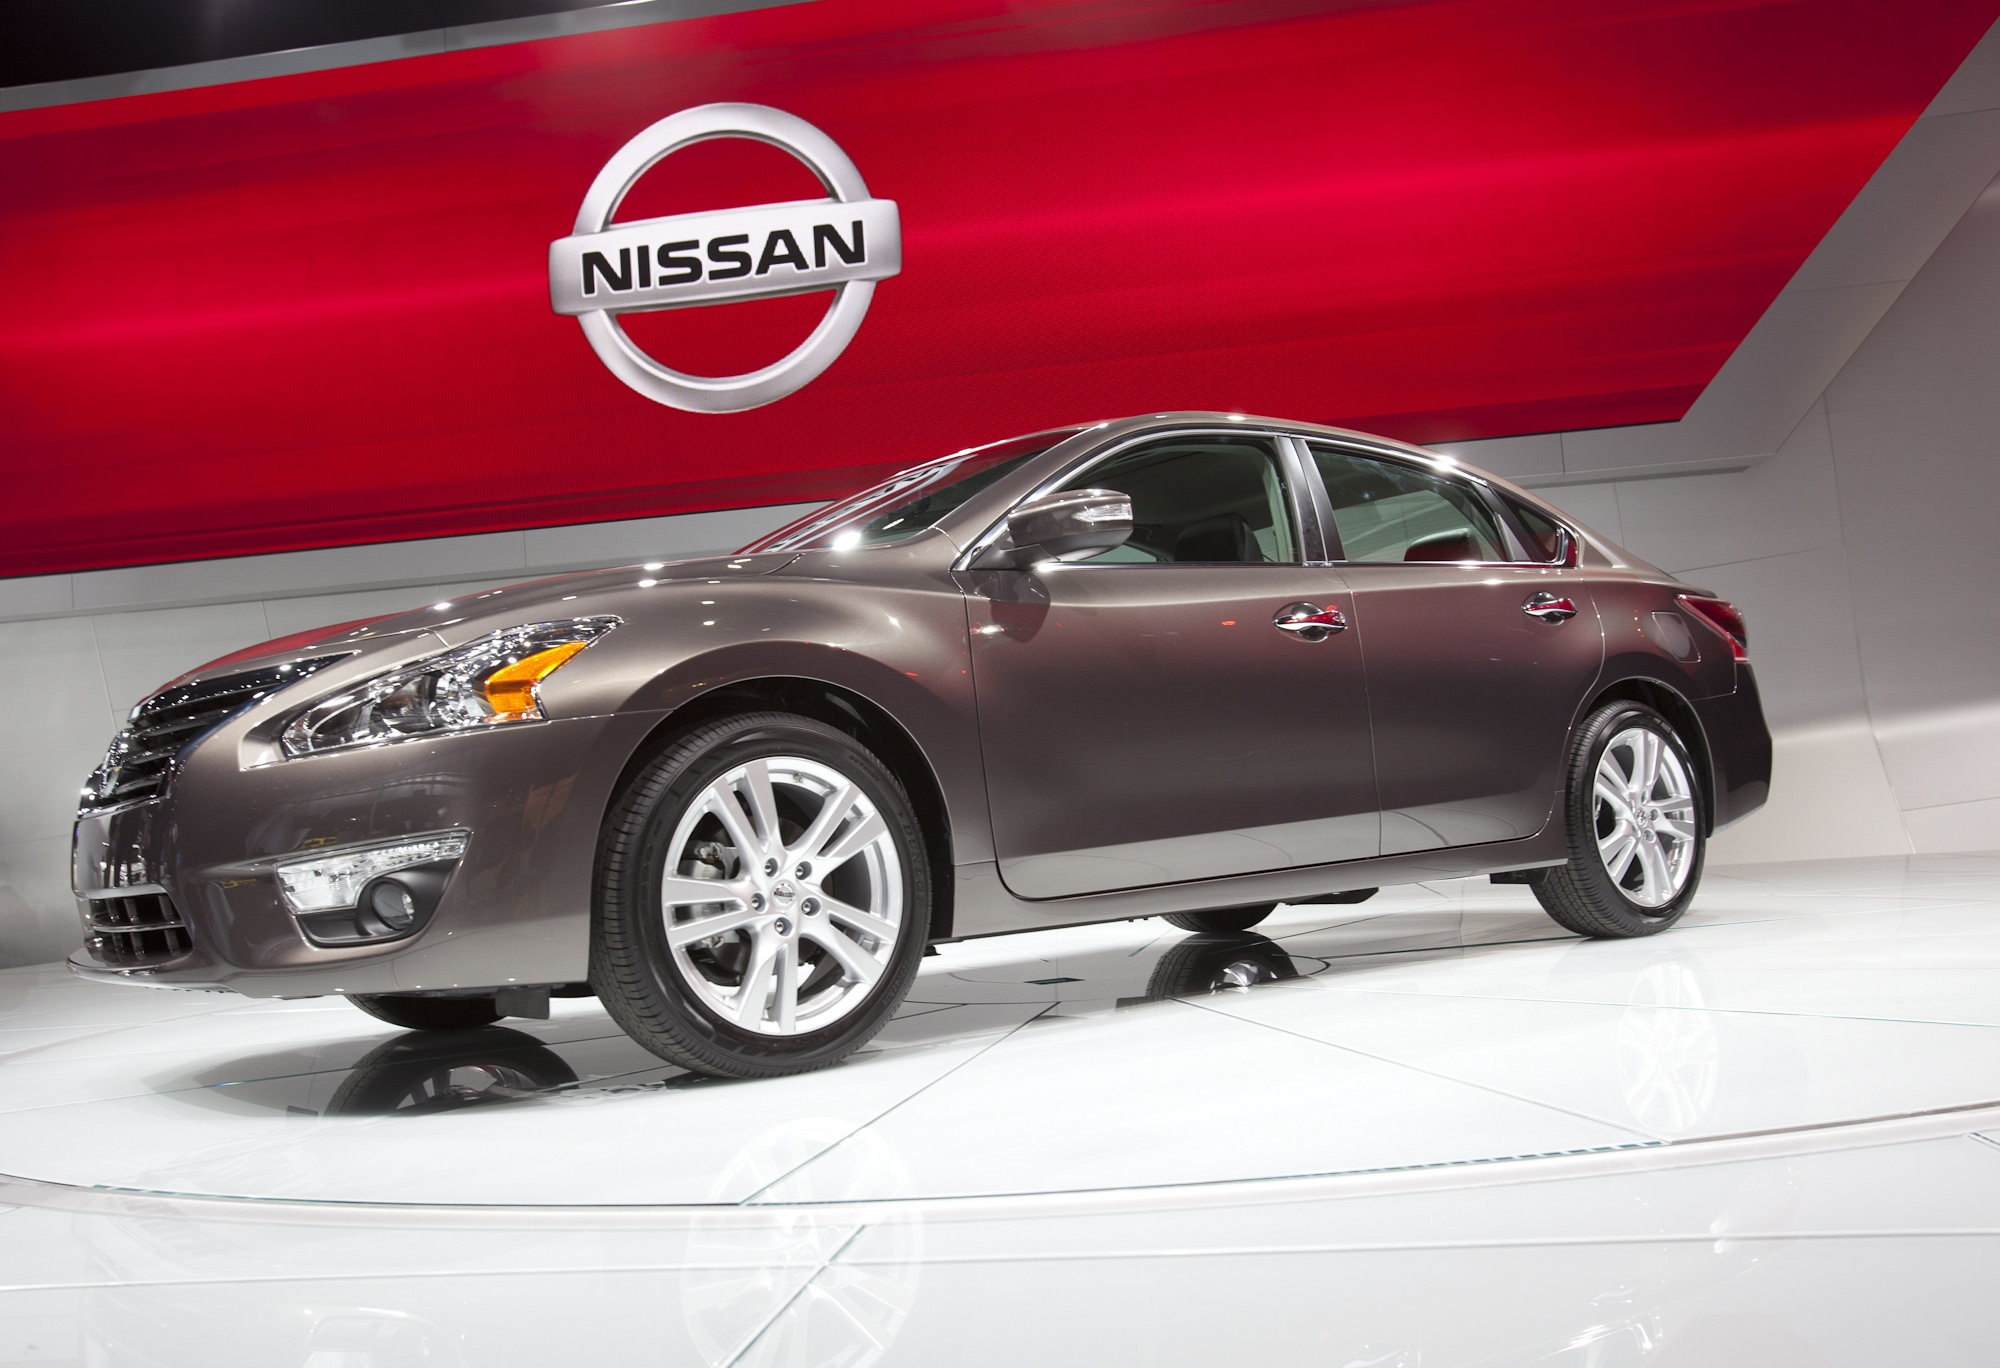 Nissan Prices to Drop on 7 Popular Models